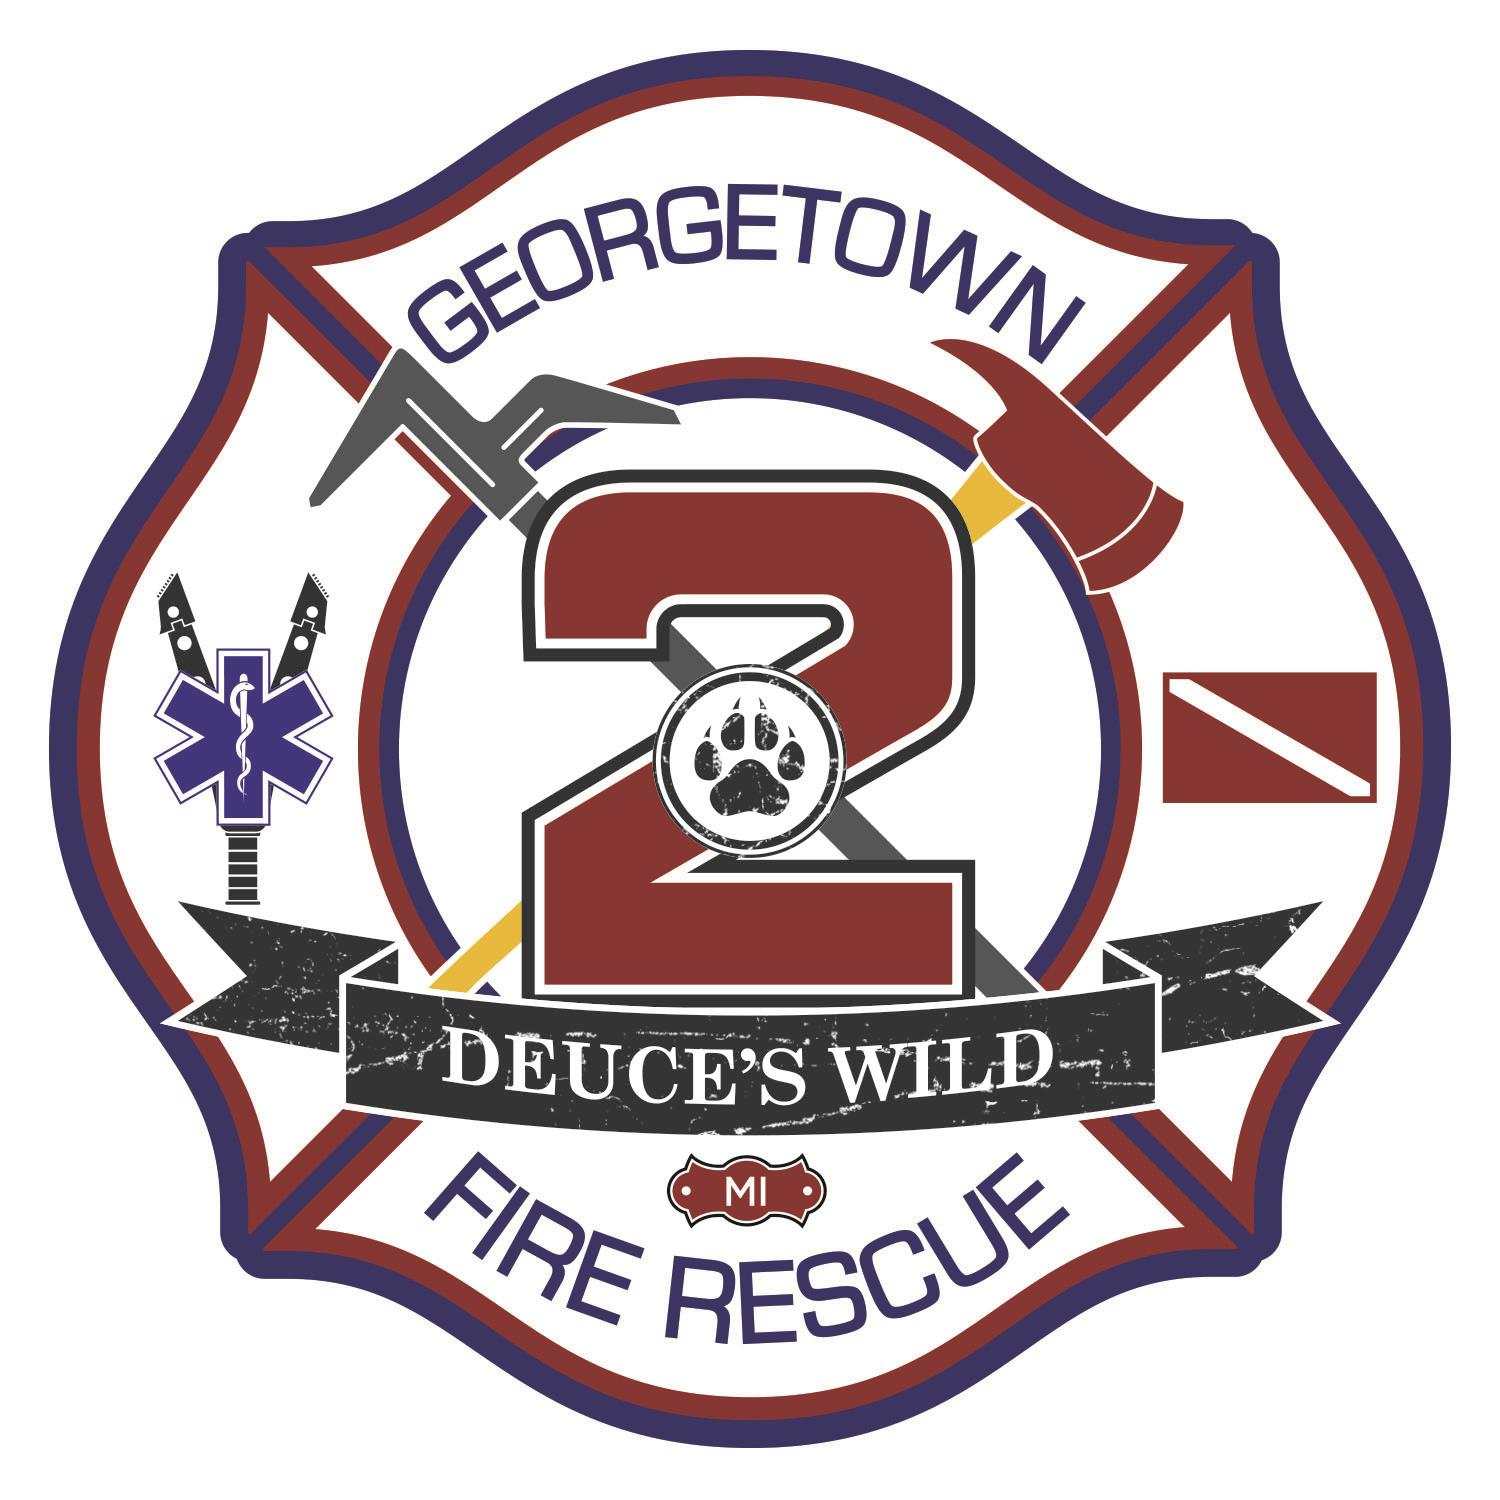 Georgetown fire station 2 georgetown mi official website station 2 was relocated in 1997 across the street to its current location at church st between cottonwood dr and main st this station is staffed with 17 biocorpaavc Choice Image